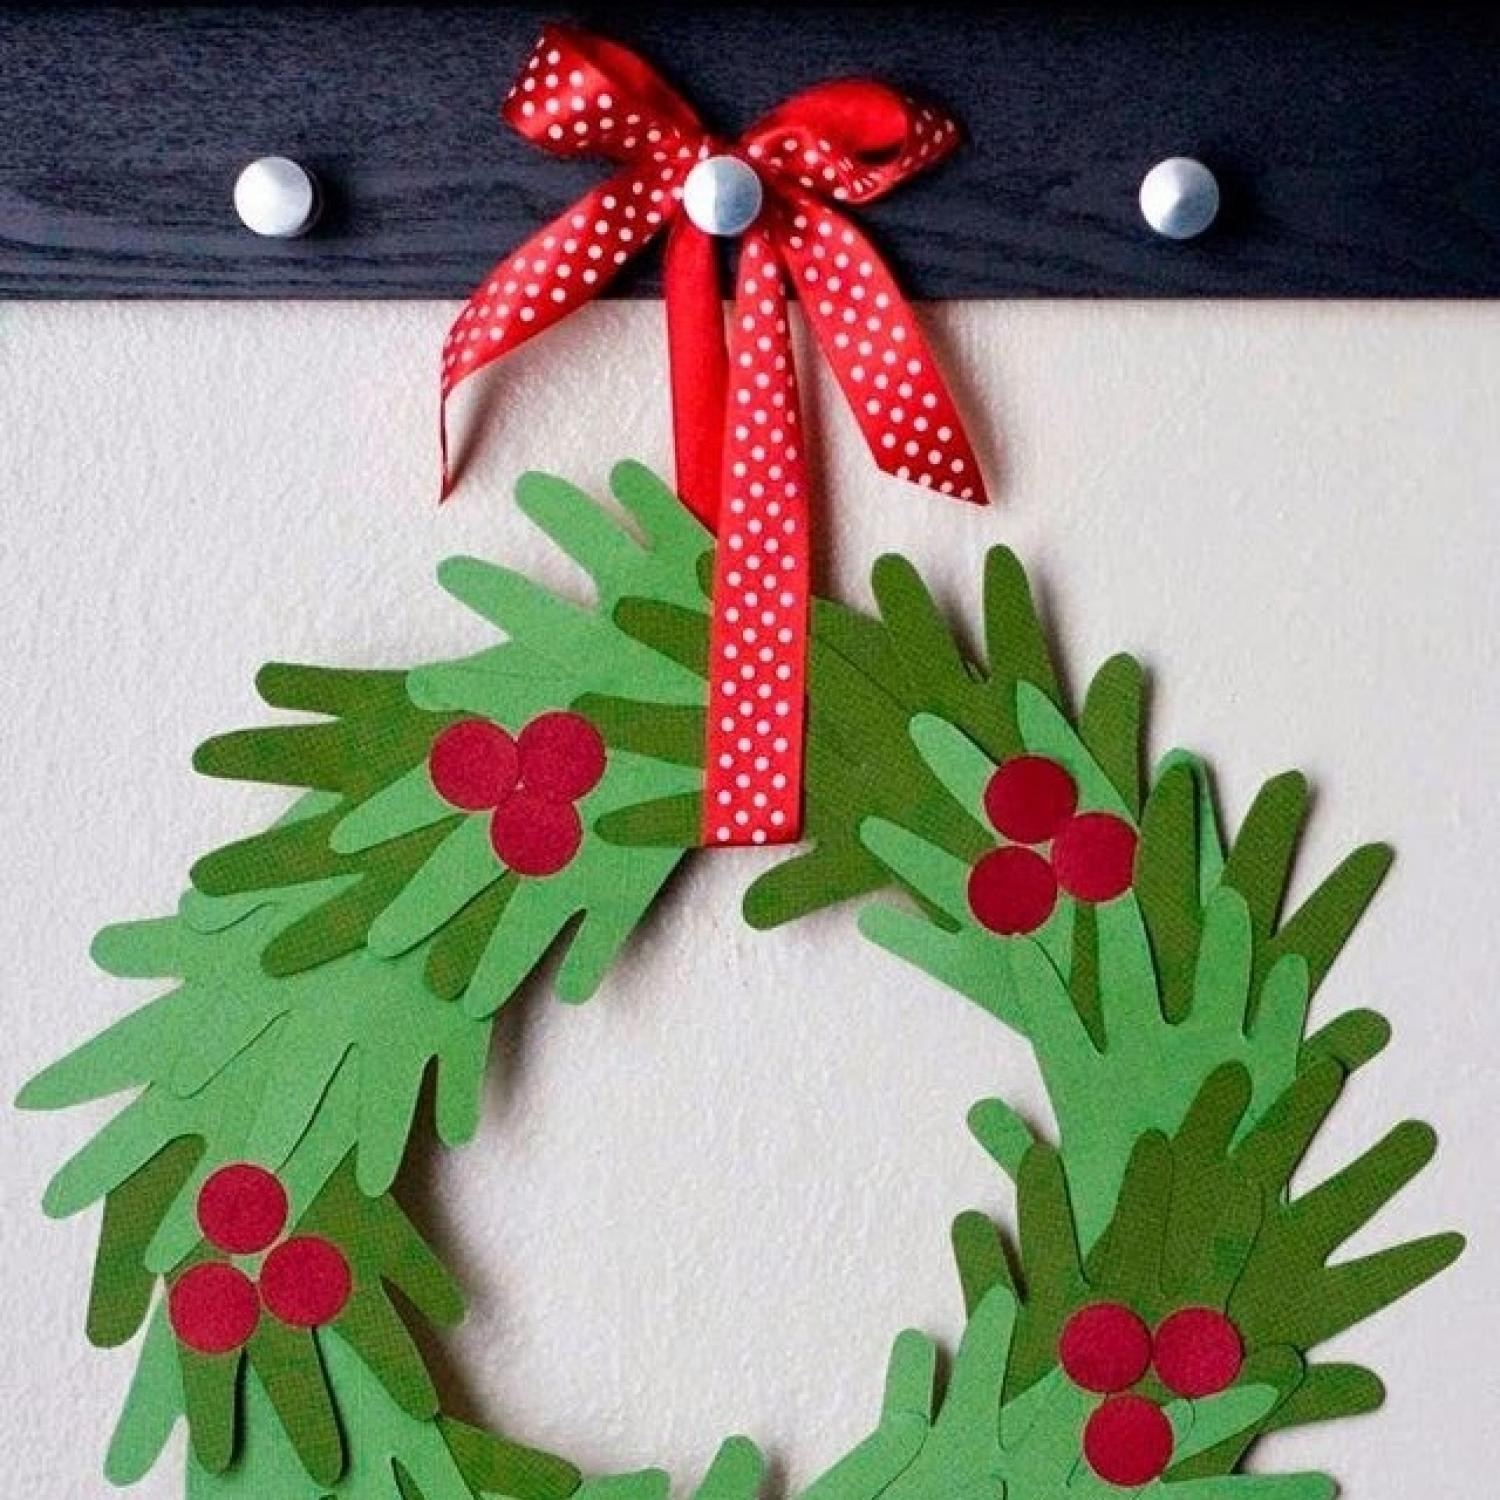 Best ideas about Christmas Craft Ideas For Children . Save or Pin 10 Handprint Christmas Crafts for Kids Now.